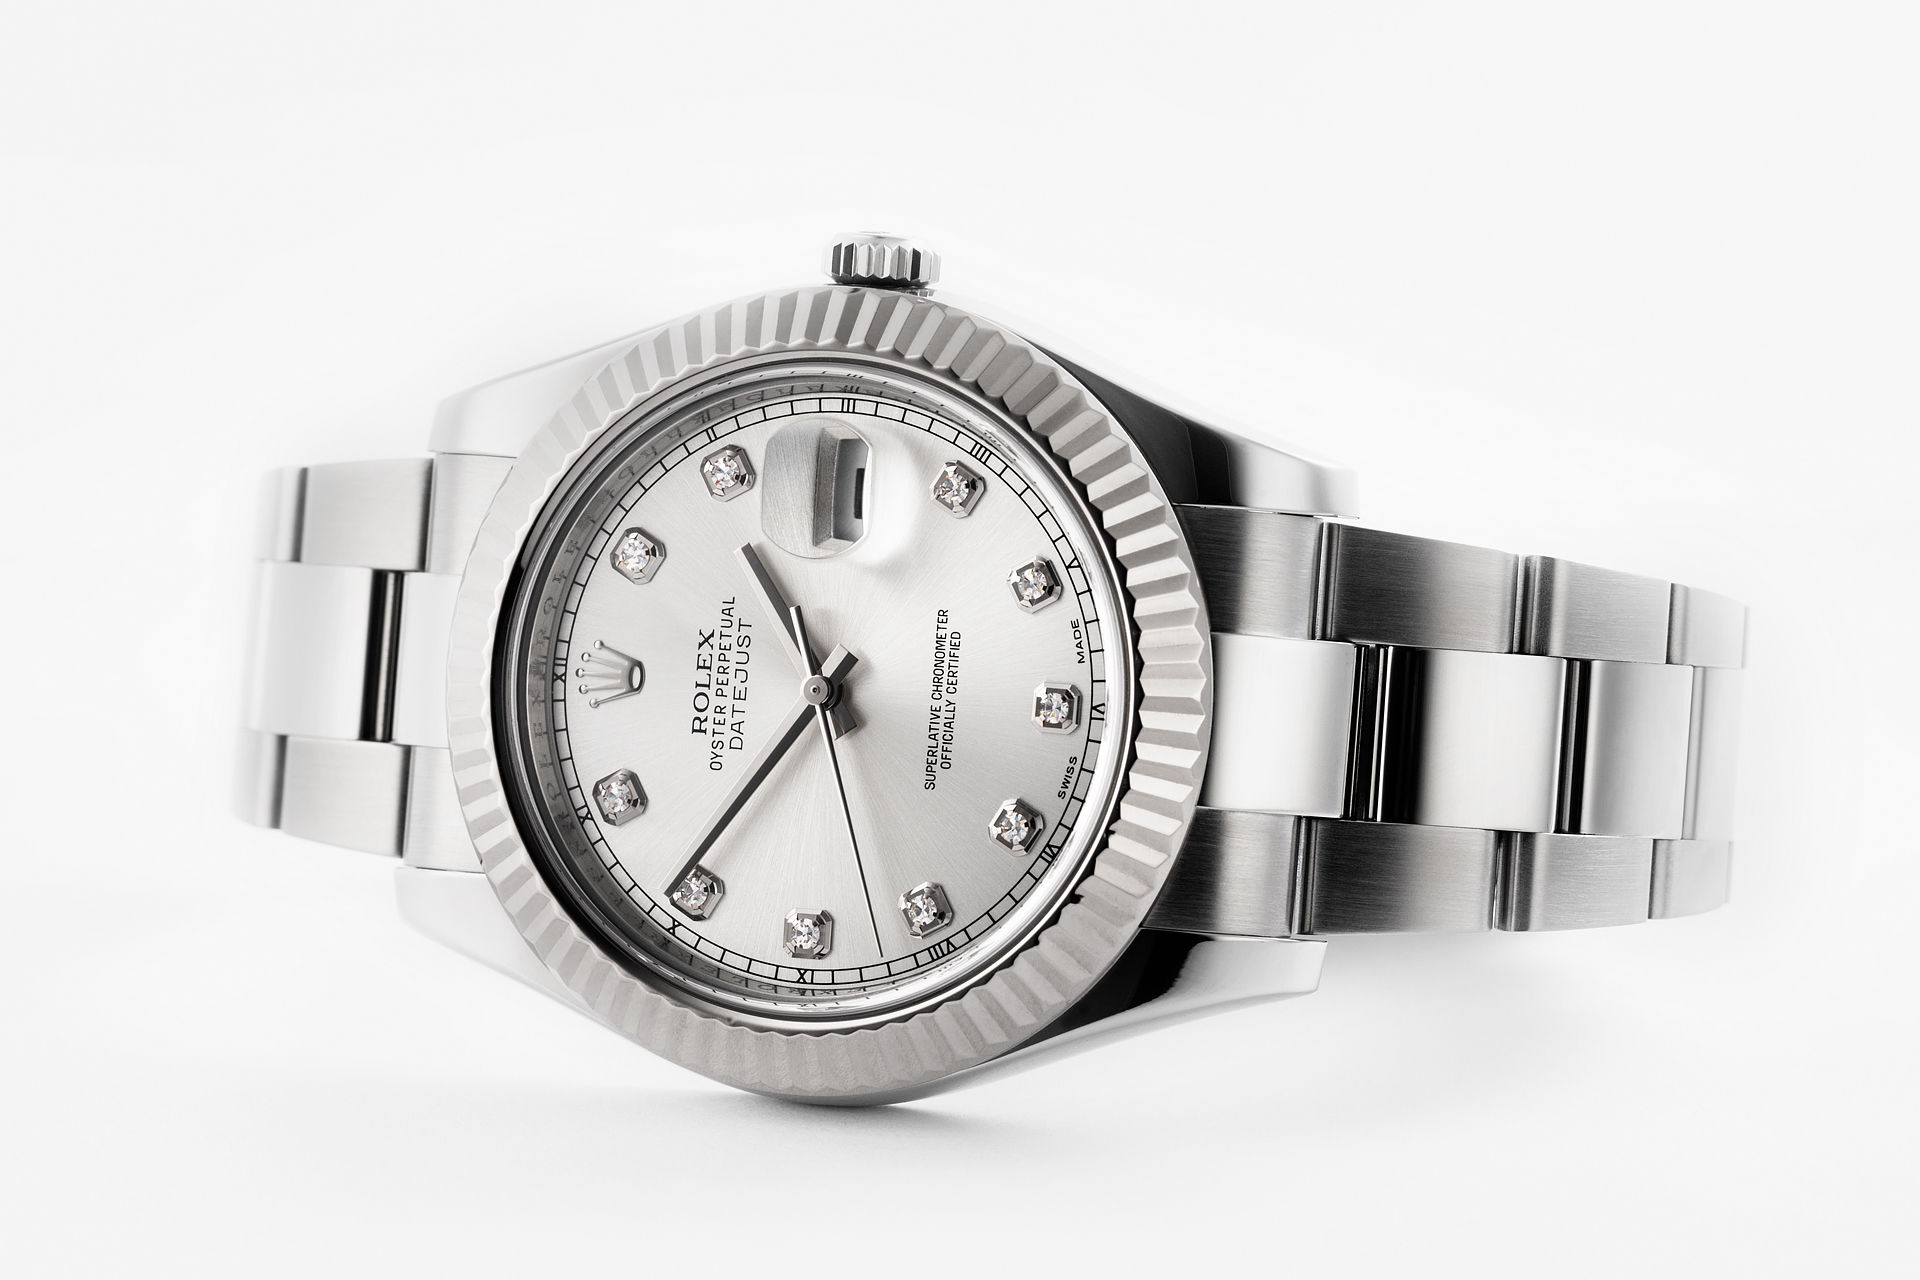 Image result for Rolex Datejust II ref. 116334 with diamond dial